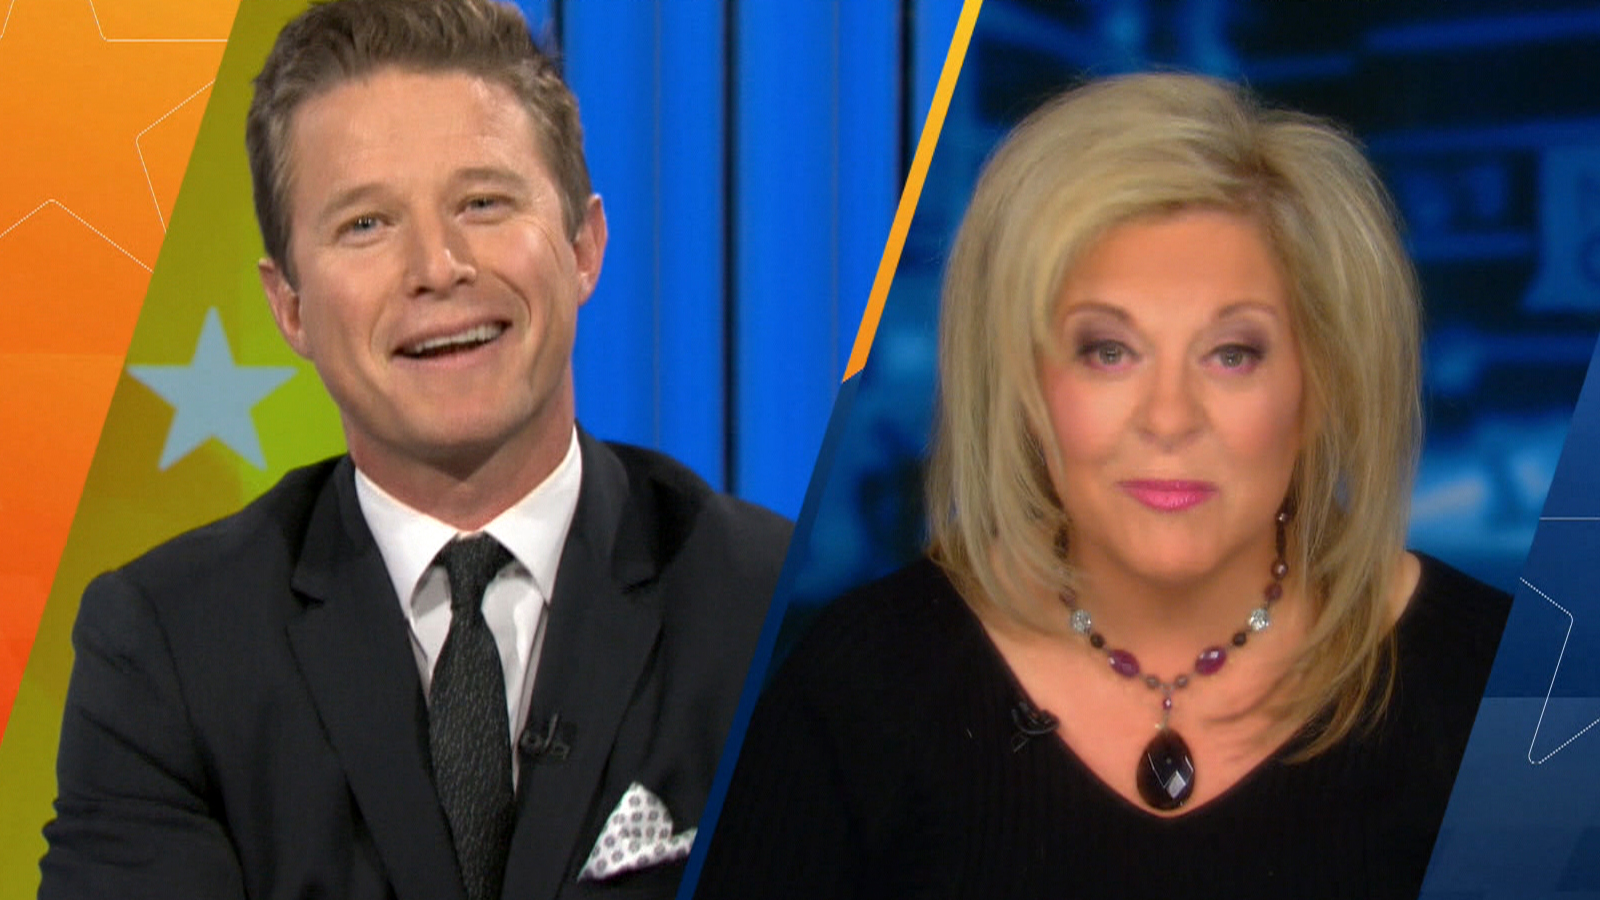 Billy Bush Goes Head-To-Head With Nancy Grace